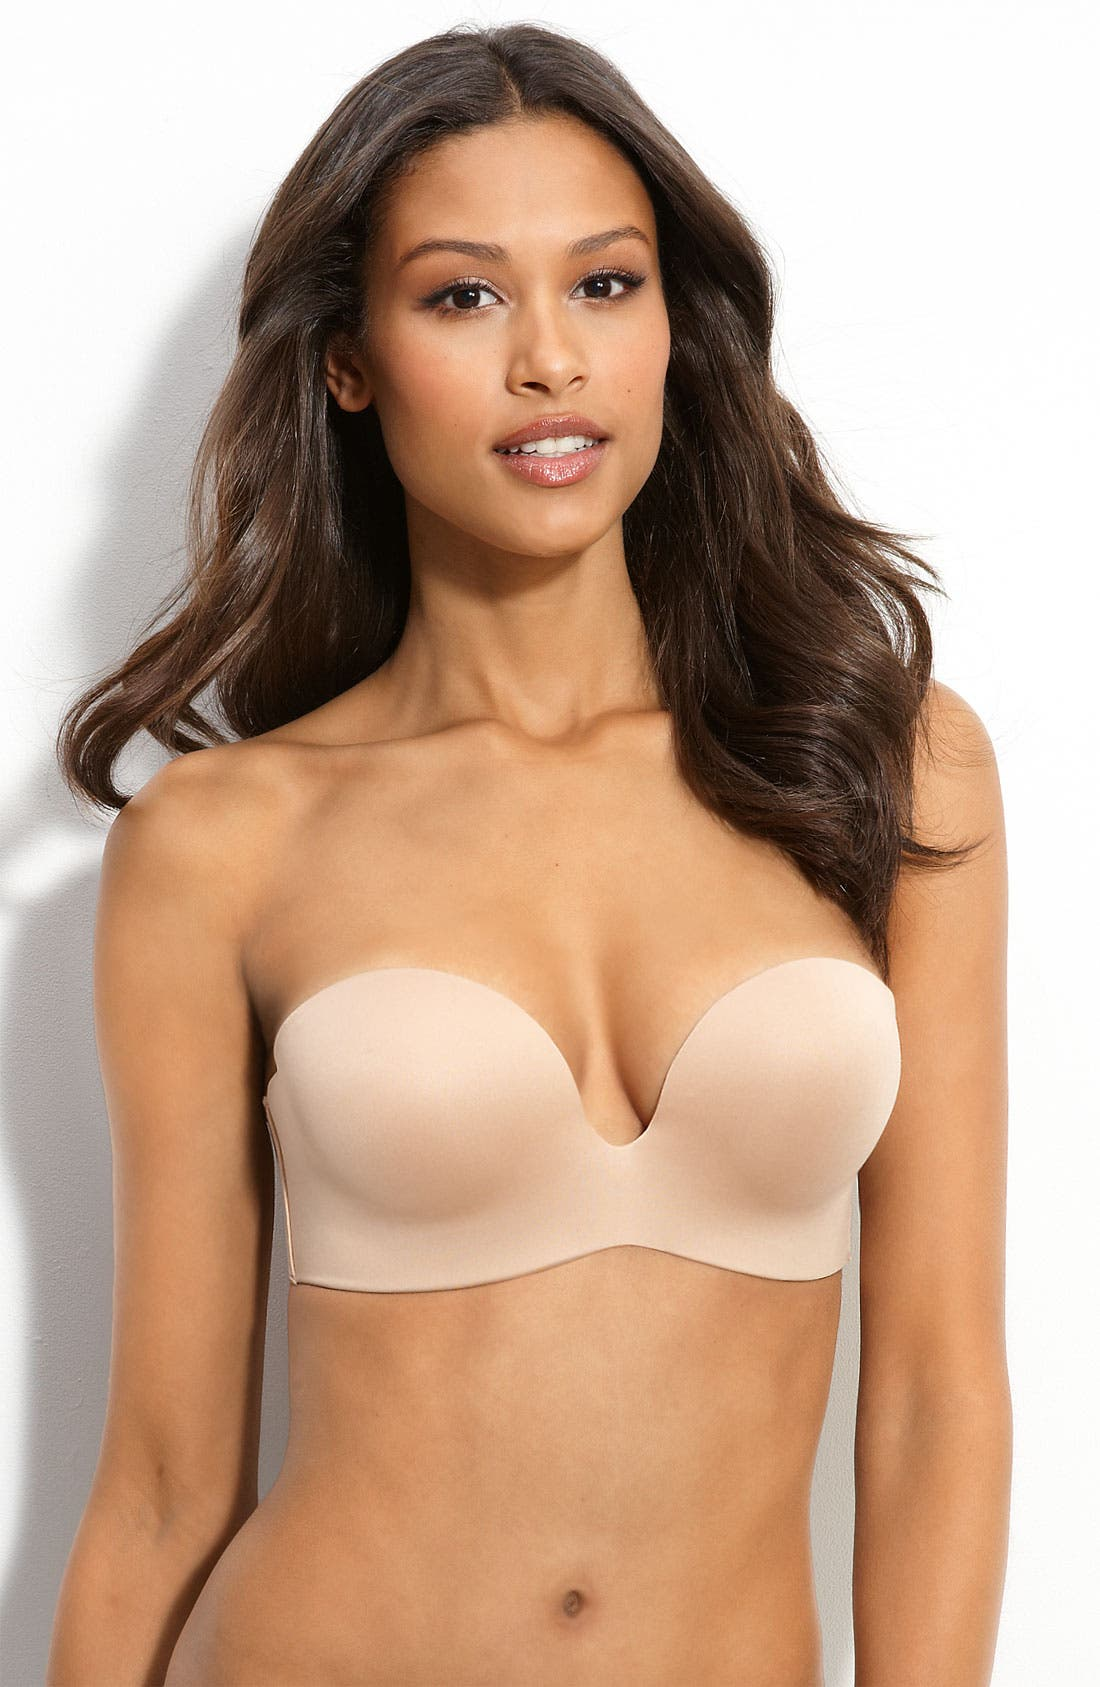 Main Image - Nordstrom Intimates 'Super Boost' Backless Underwire Bra